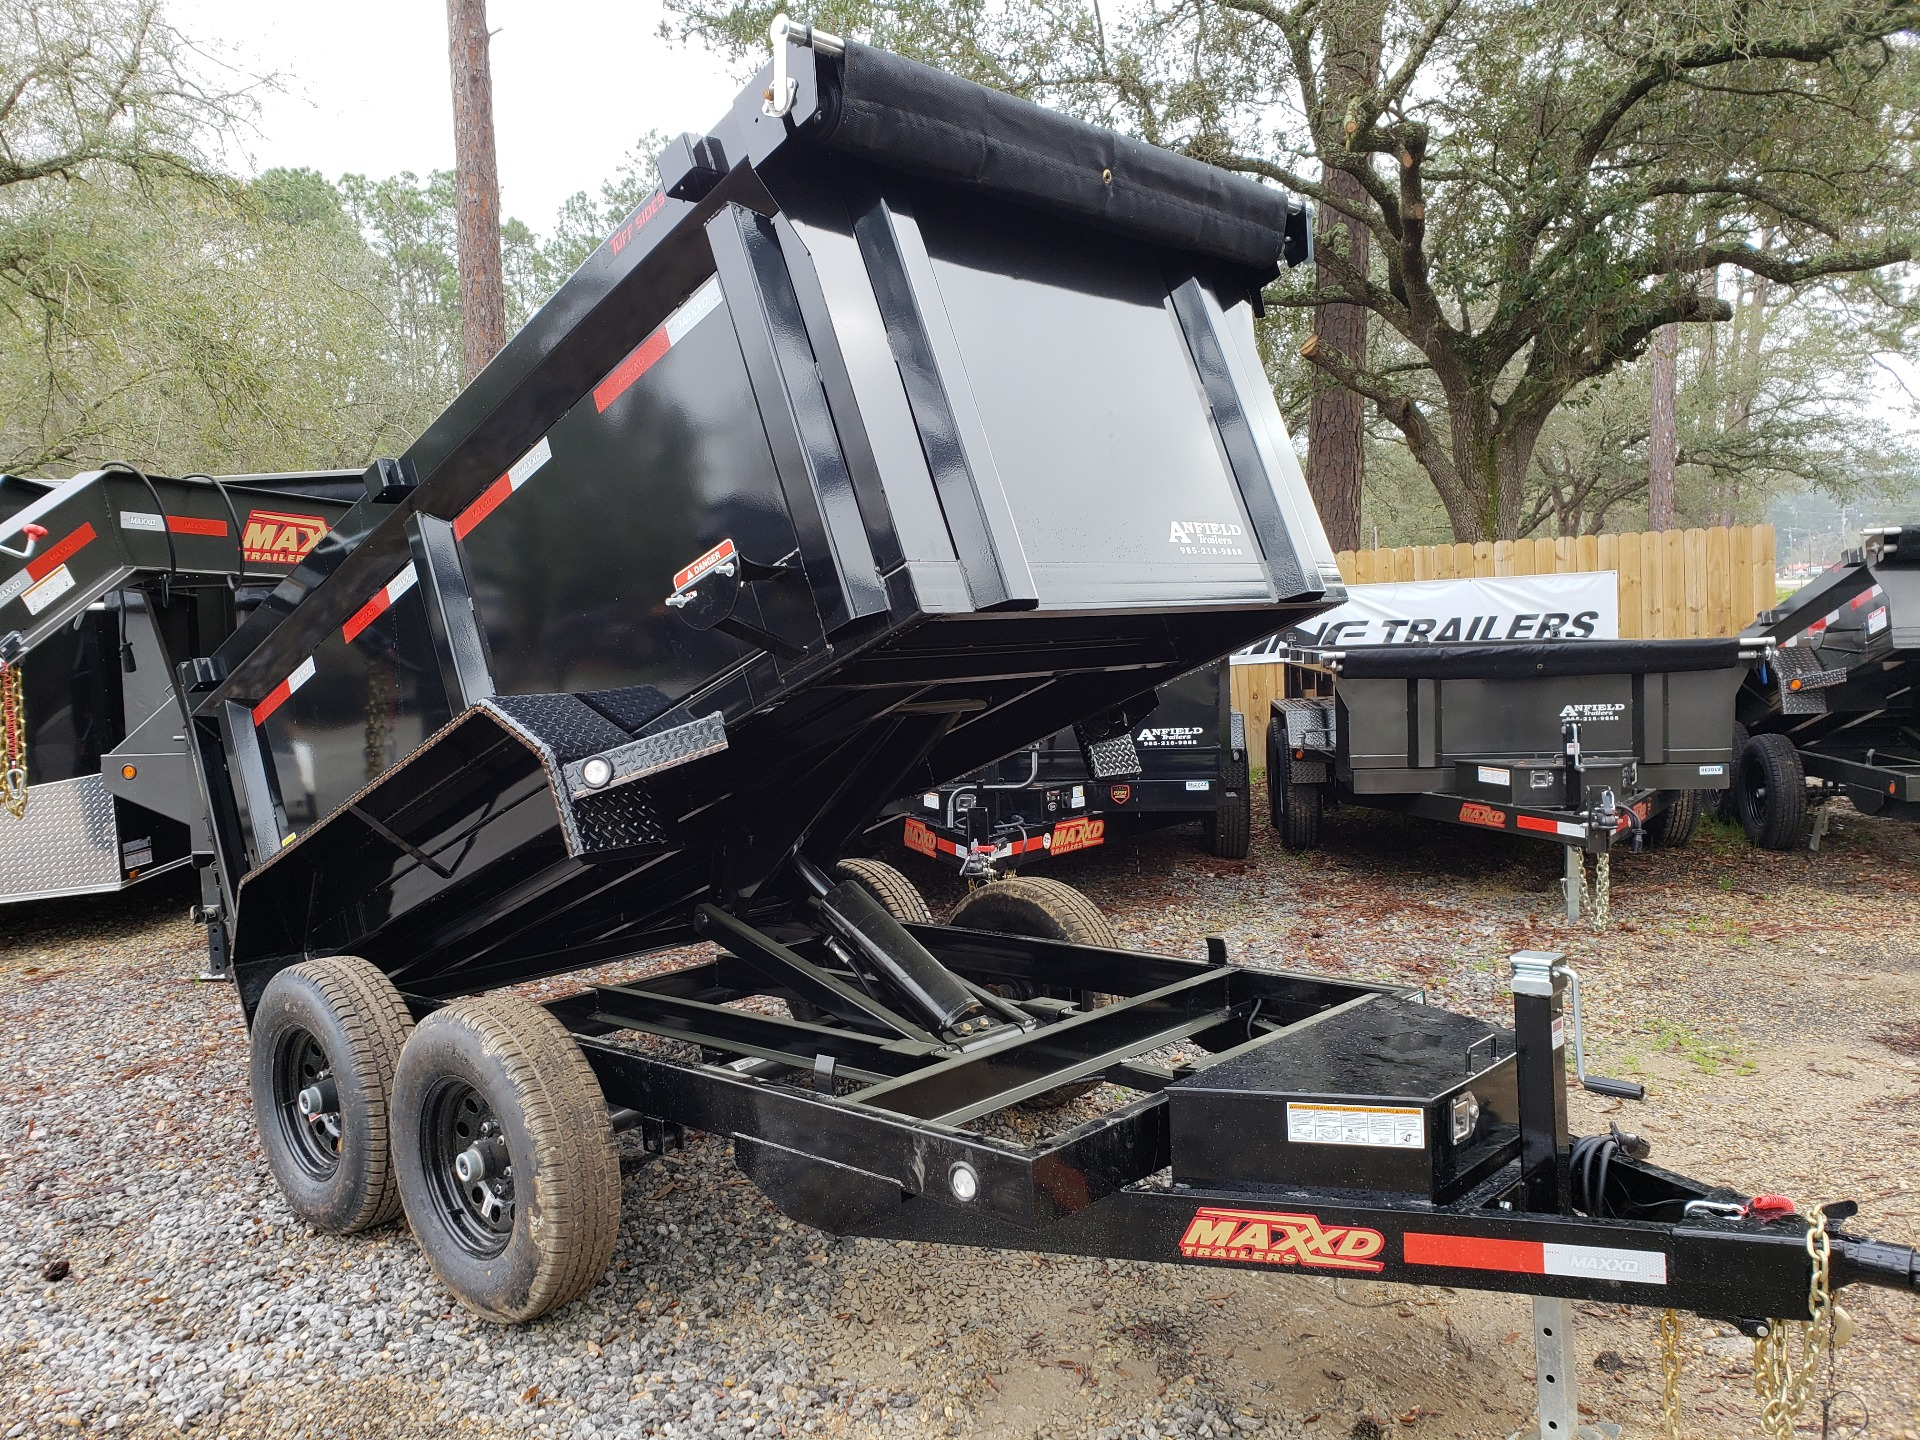 2019 MaxxD Trailers 10 x 60 Dump 3' Sides in Pearl River, Louisiana - Photo 9